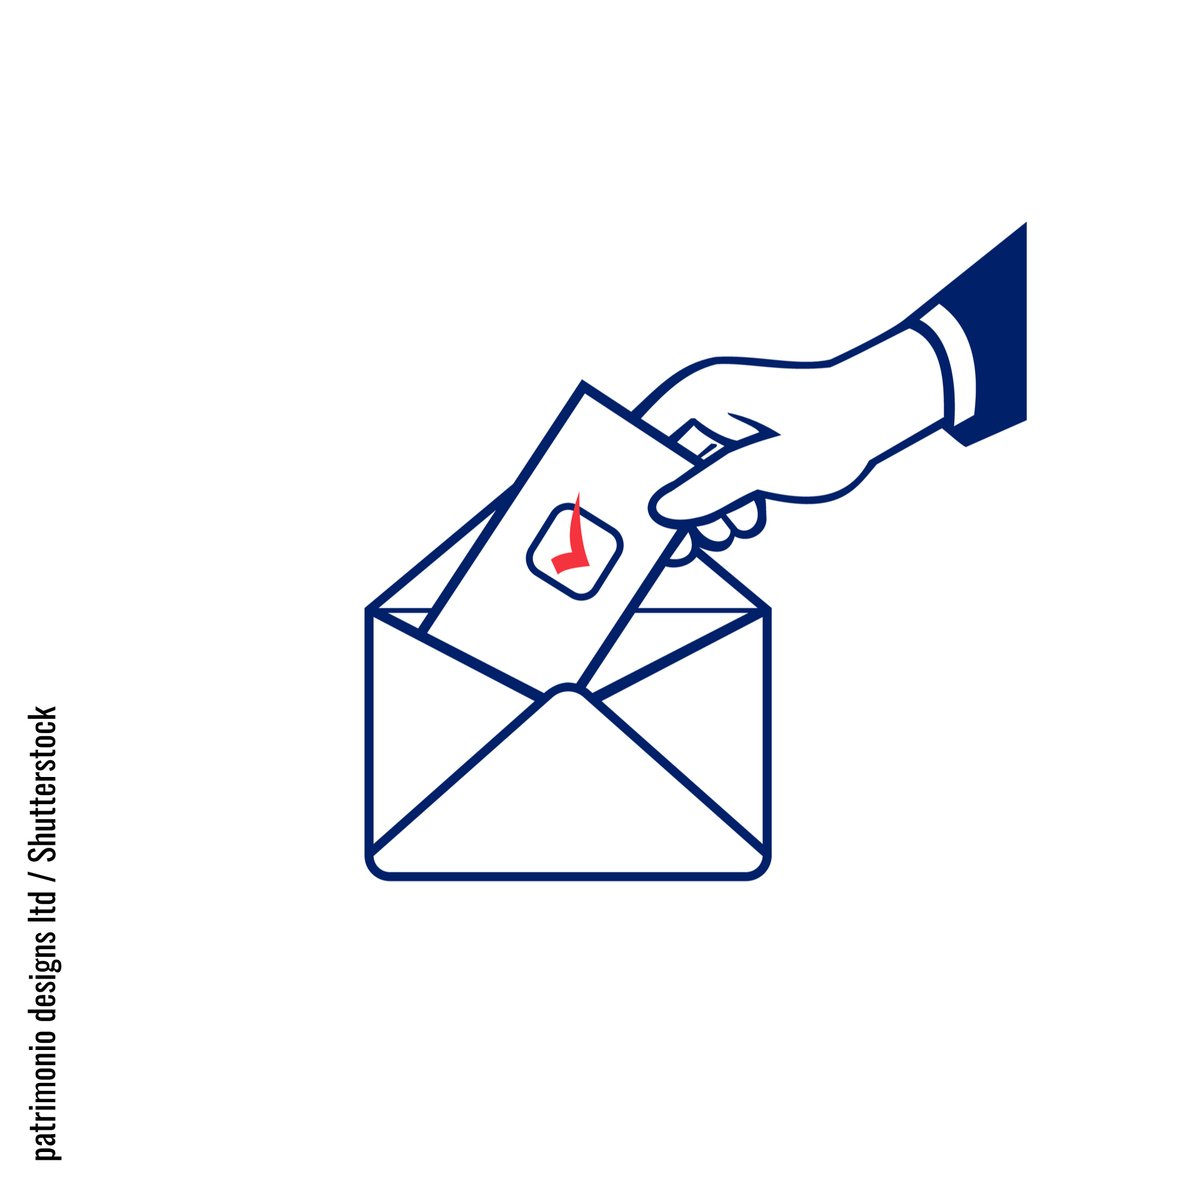 #PostalVoting & #EarlyVoting are just two of the topics covered by ODIHR's new paper on the benefits and risks of alternative voting methods – helping to keep #elections in line with democratic standards across the #OSCE, despite #COVID19. Read more: https://t.co/G8BT8jxmJm https://t.co/q5CPKOcaTQ